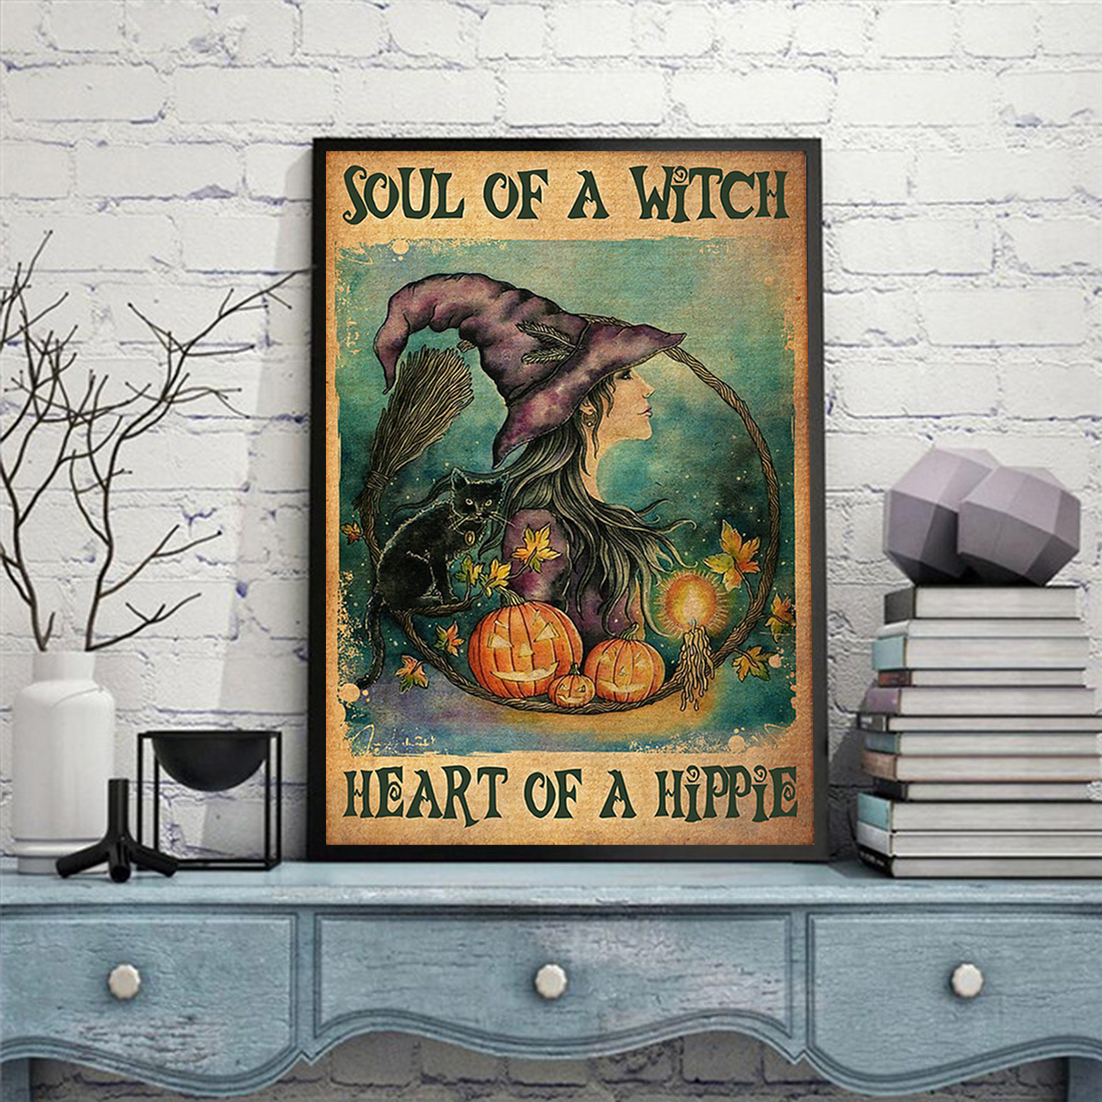 Soul of a witch health of a hippie poster A2